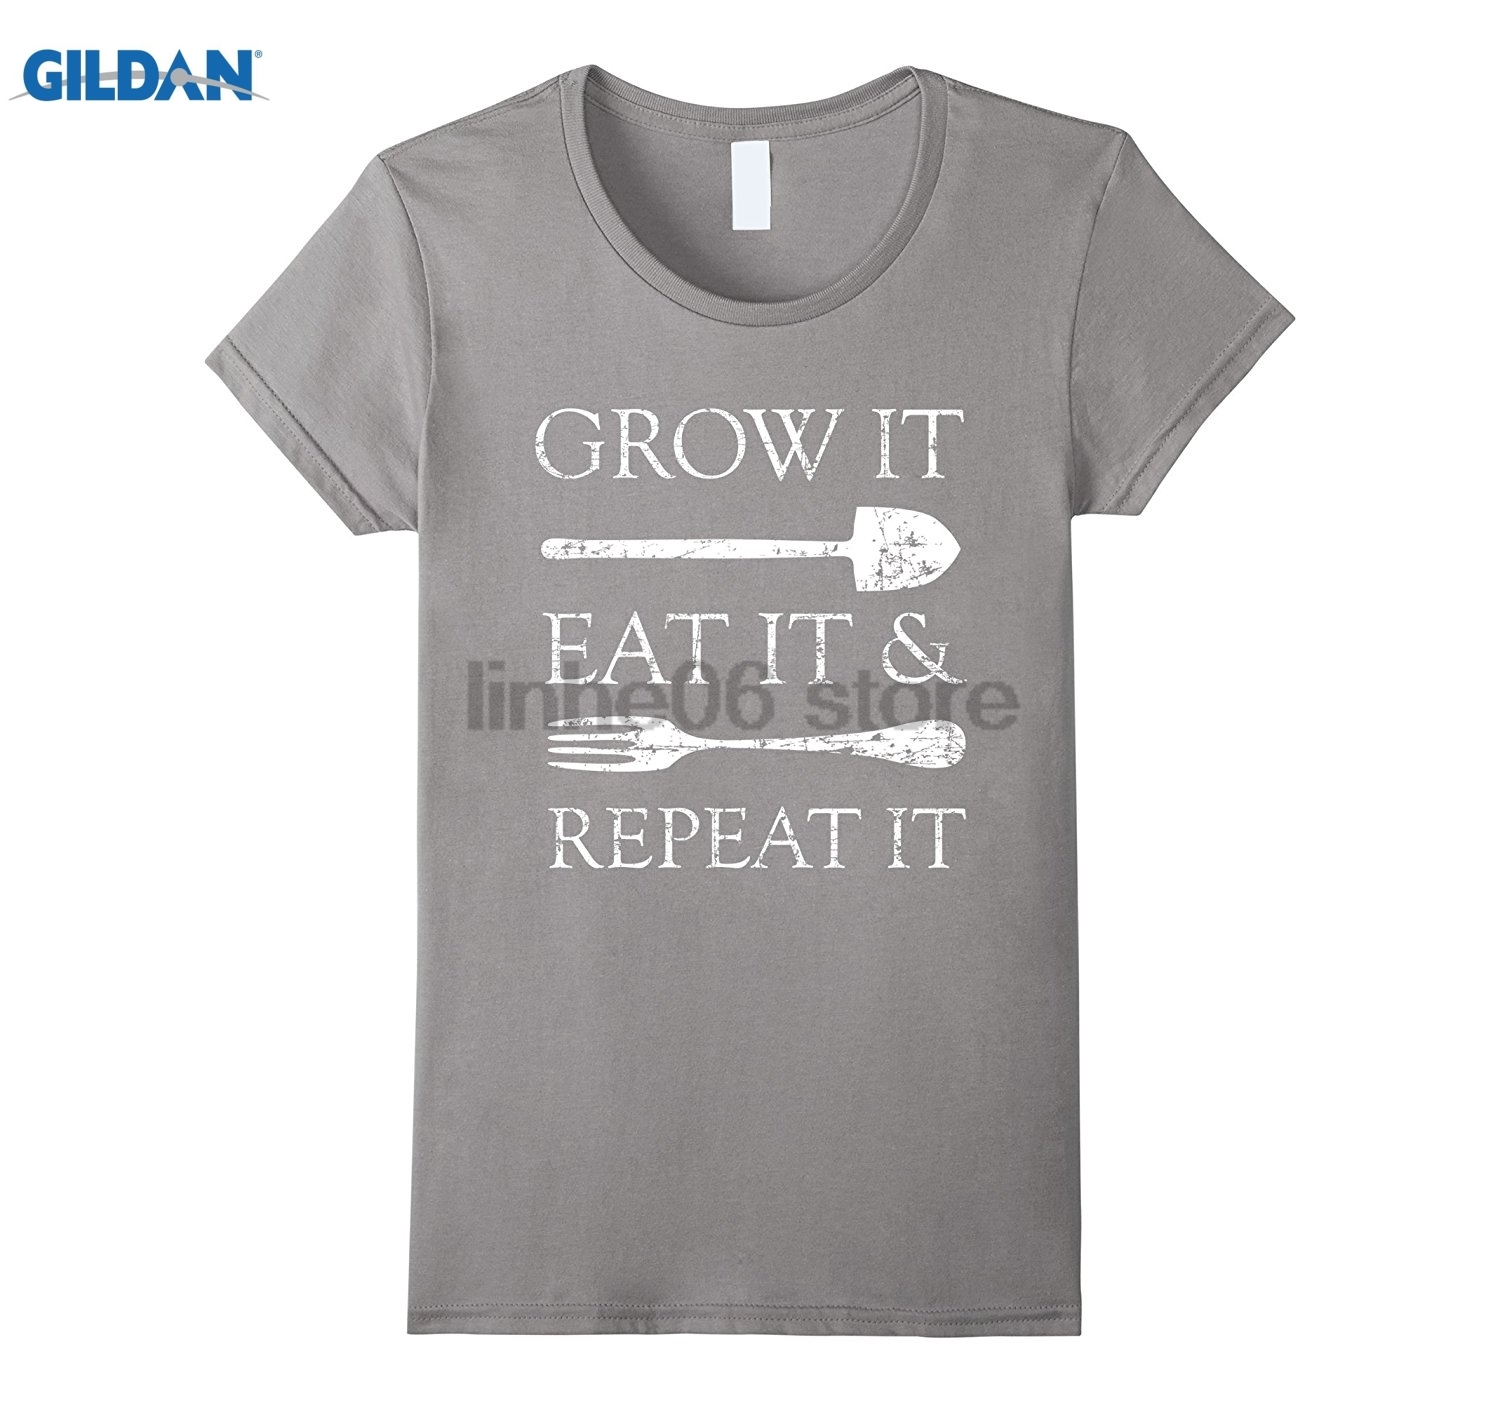 GILDAN Grow it, Eat it & Repeat it Shirt, Gardening, Eating Organic sunglasses women T-shirt